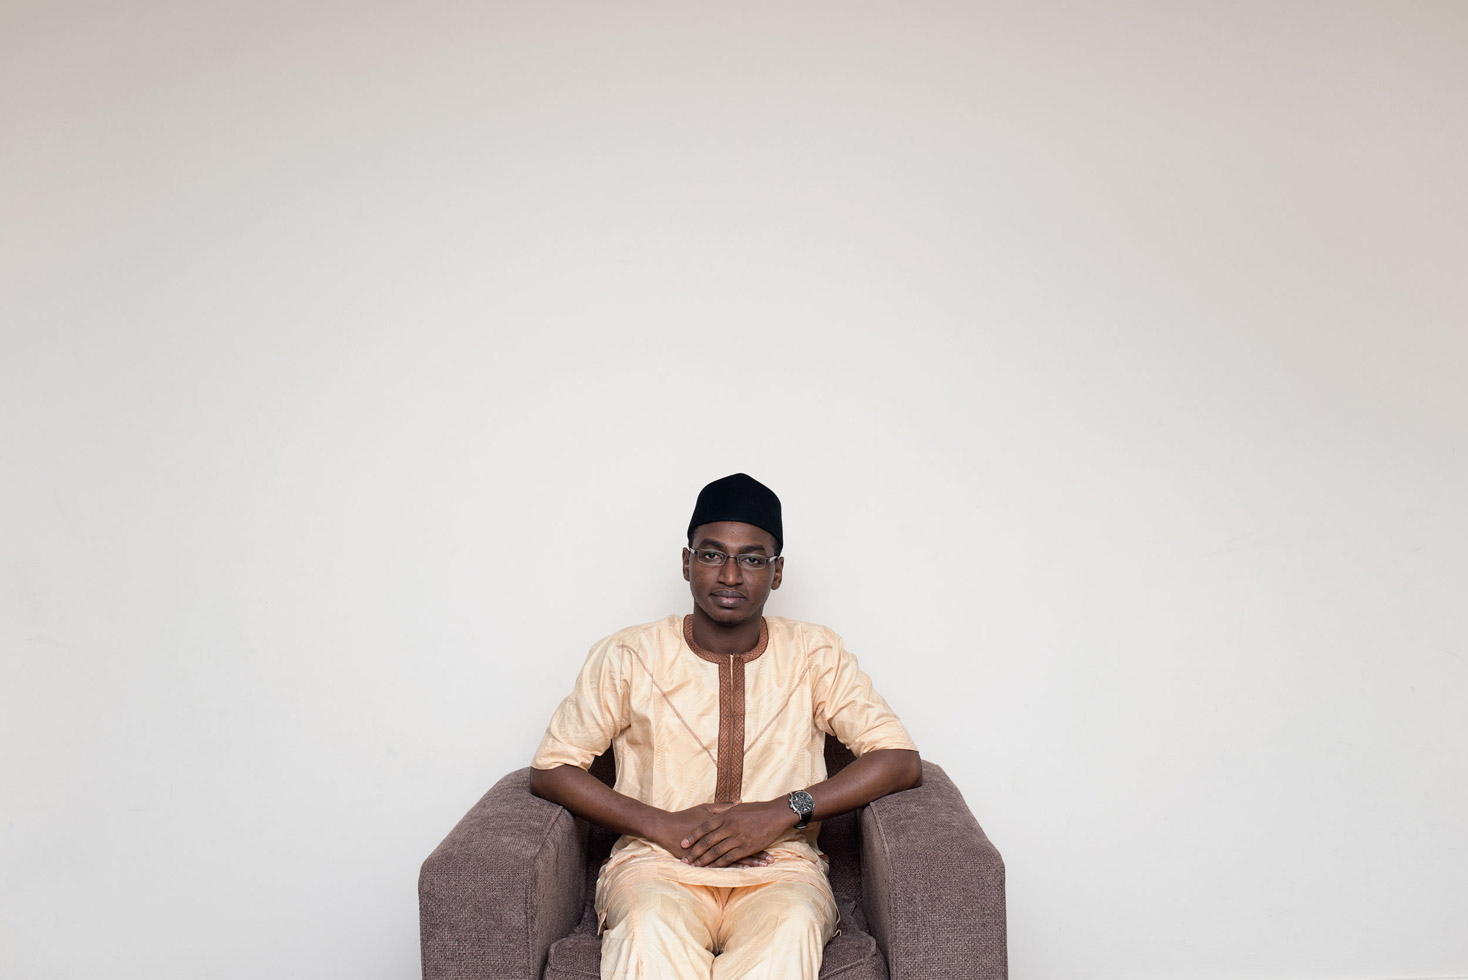 Mohammed (Aberdeen, 2013)